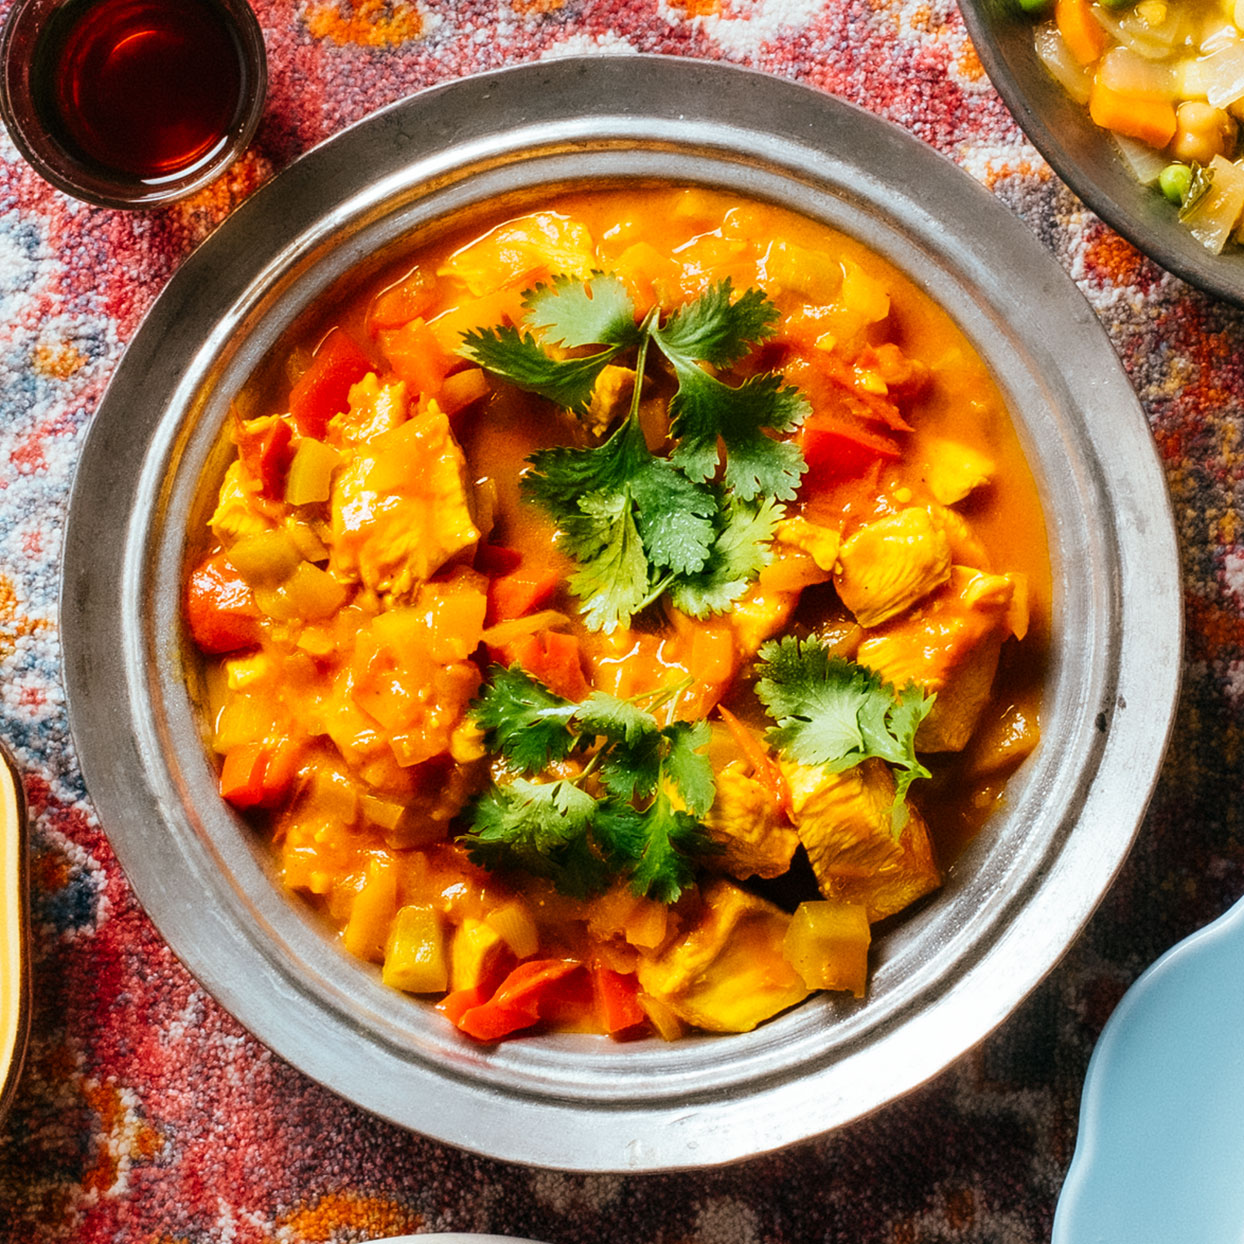 Naseema Kashefi prepares this richly flavored chicken curry on the milder side for New Arrival Supper Club events in Los Angeles. Add more serrano if you like it hot.Source: EatingWell Magazine, January/February 2020